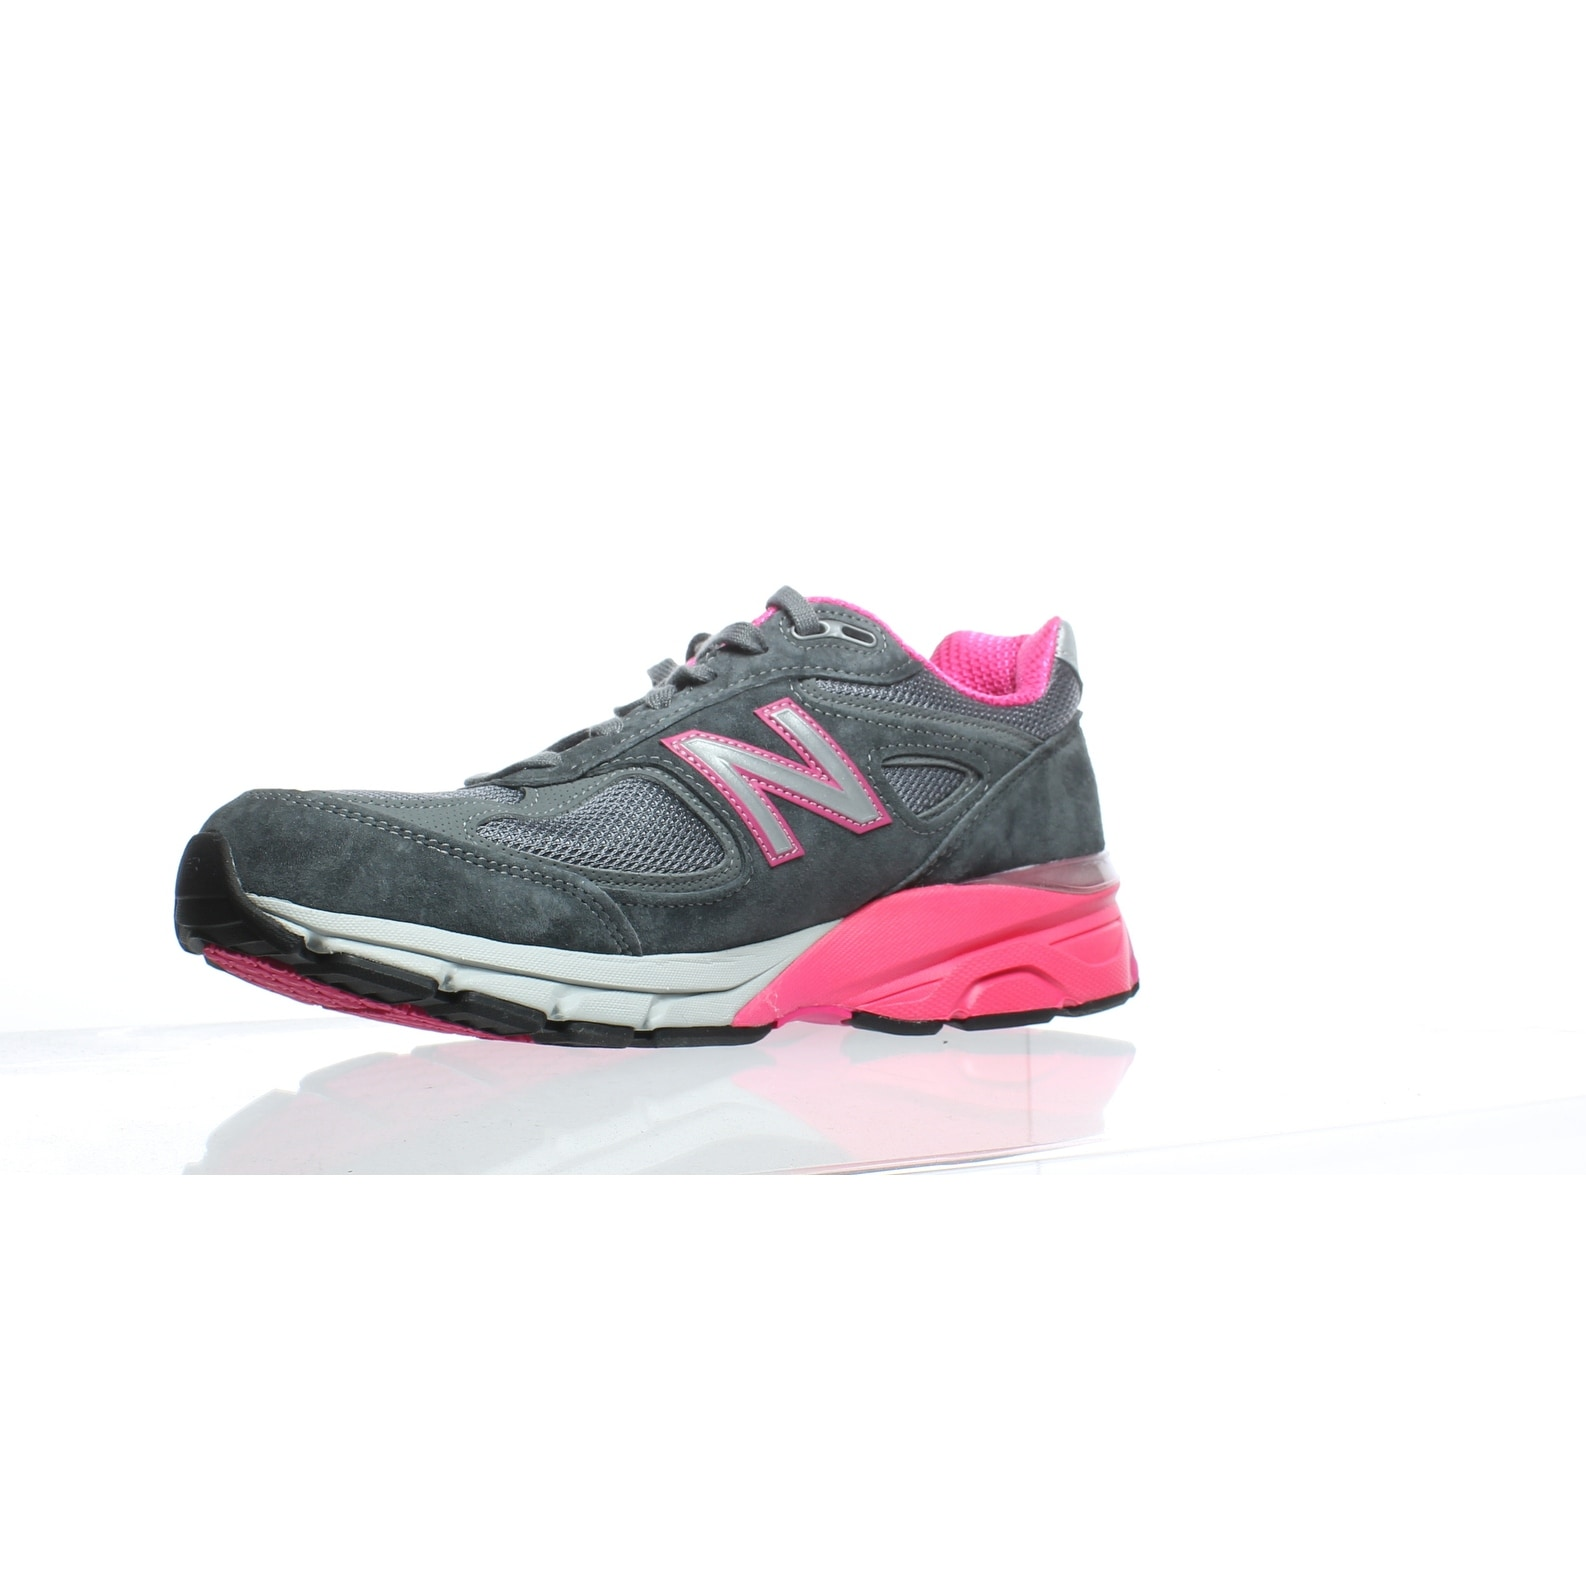 finest selection 44e32 4538d Balance Womens W990gp4 Grey/Pink Running Shoes Size 10 (C,D,W)